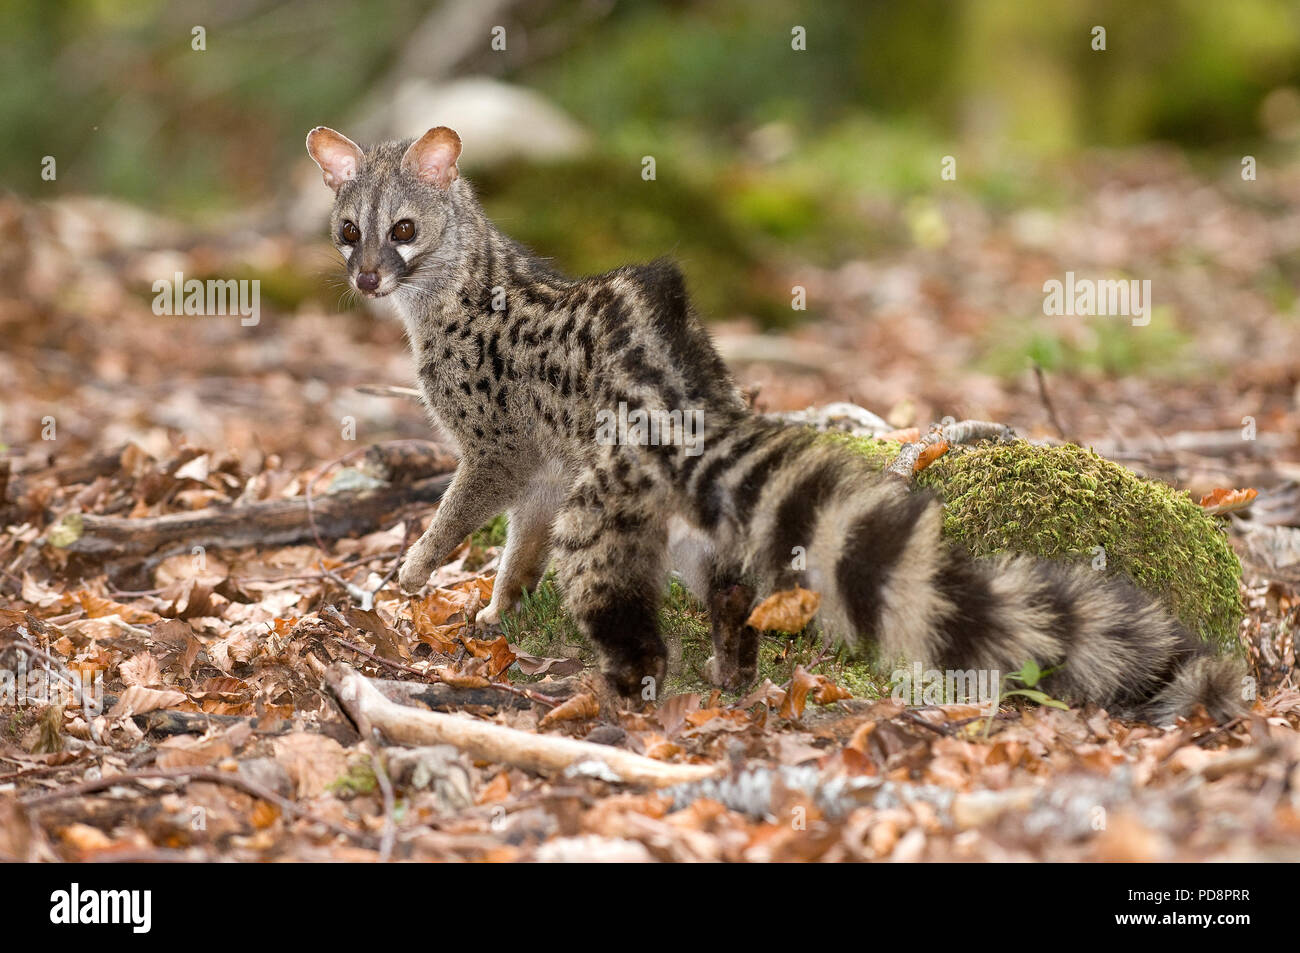 Genet Genetta Genetta France Genette D Europe Stock Photo Alamy